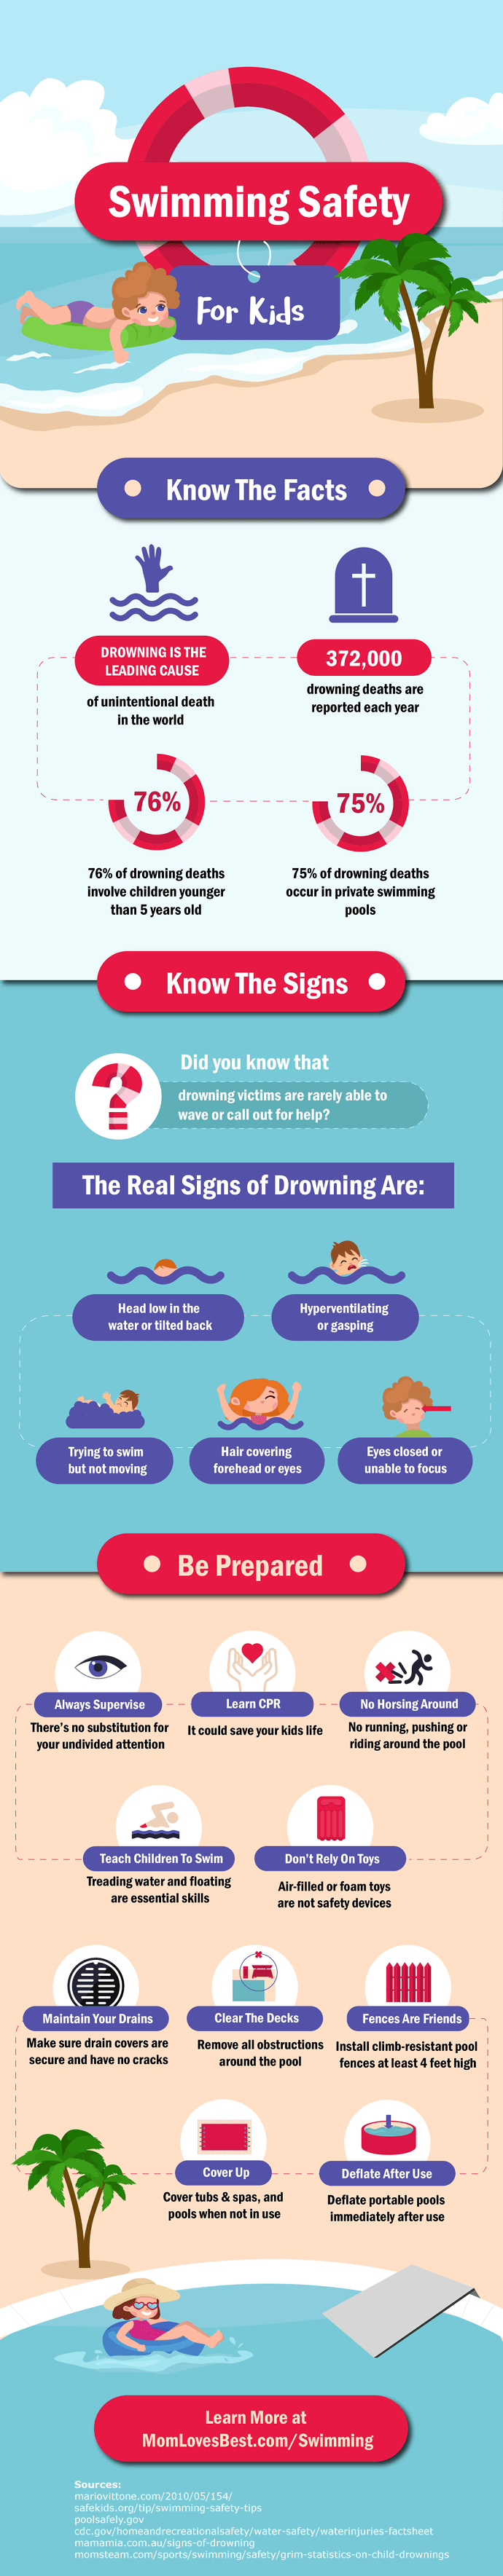 Jenny Silverstone Infographic on Swimming Safety for Kids